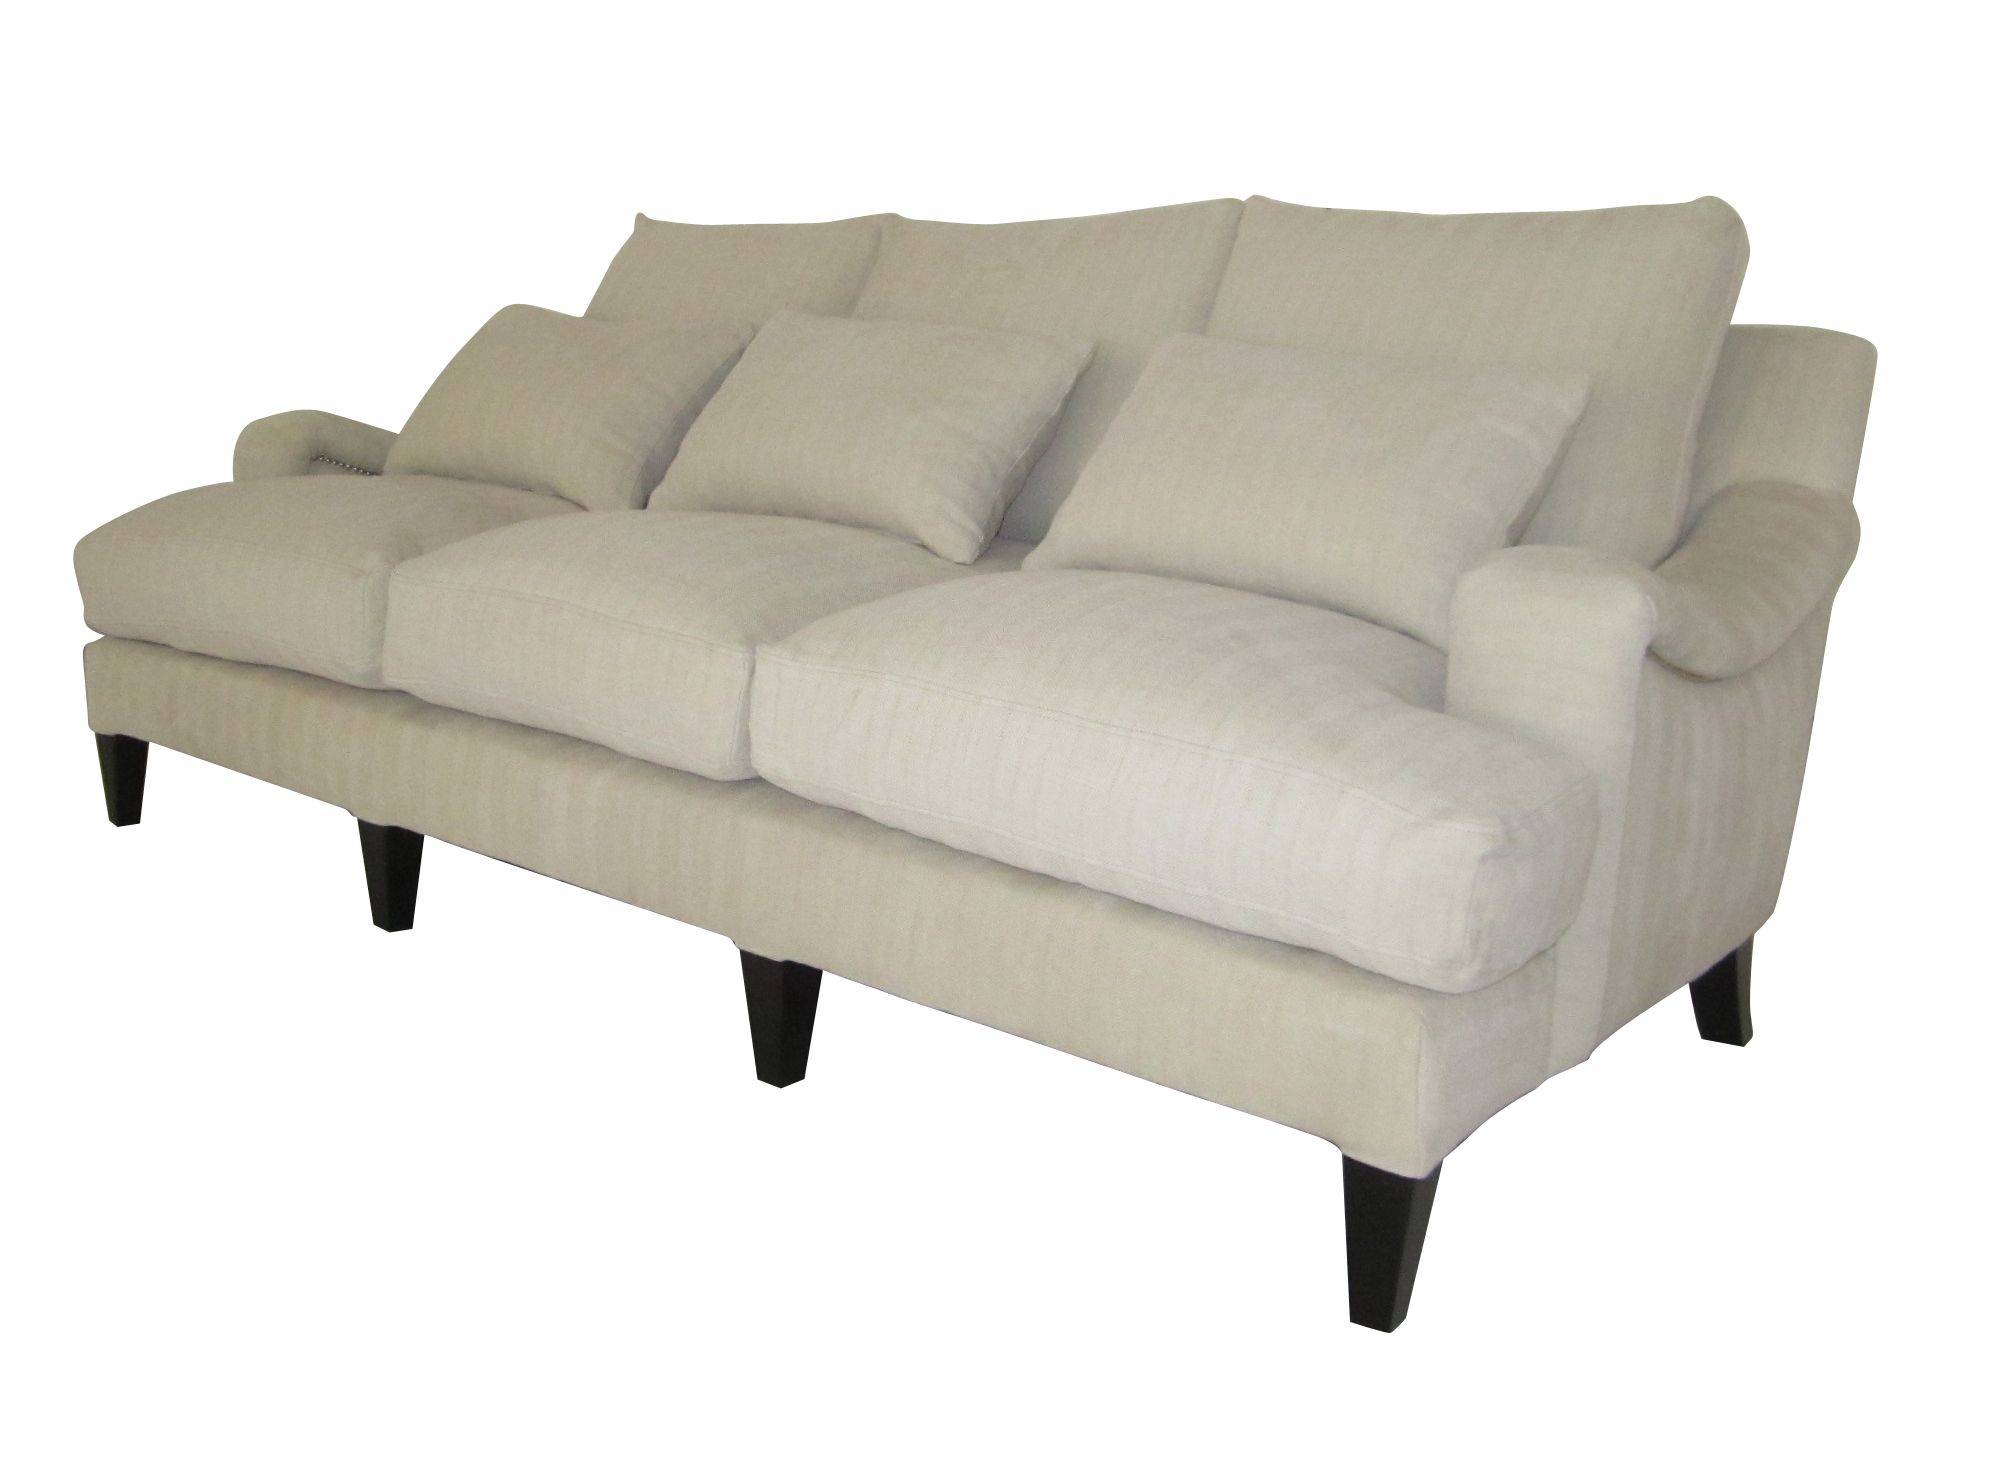 Dickens Sofa in Dovedale Color 1 Furniture